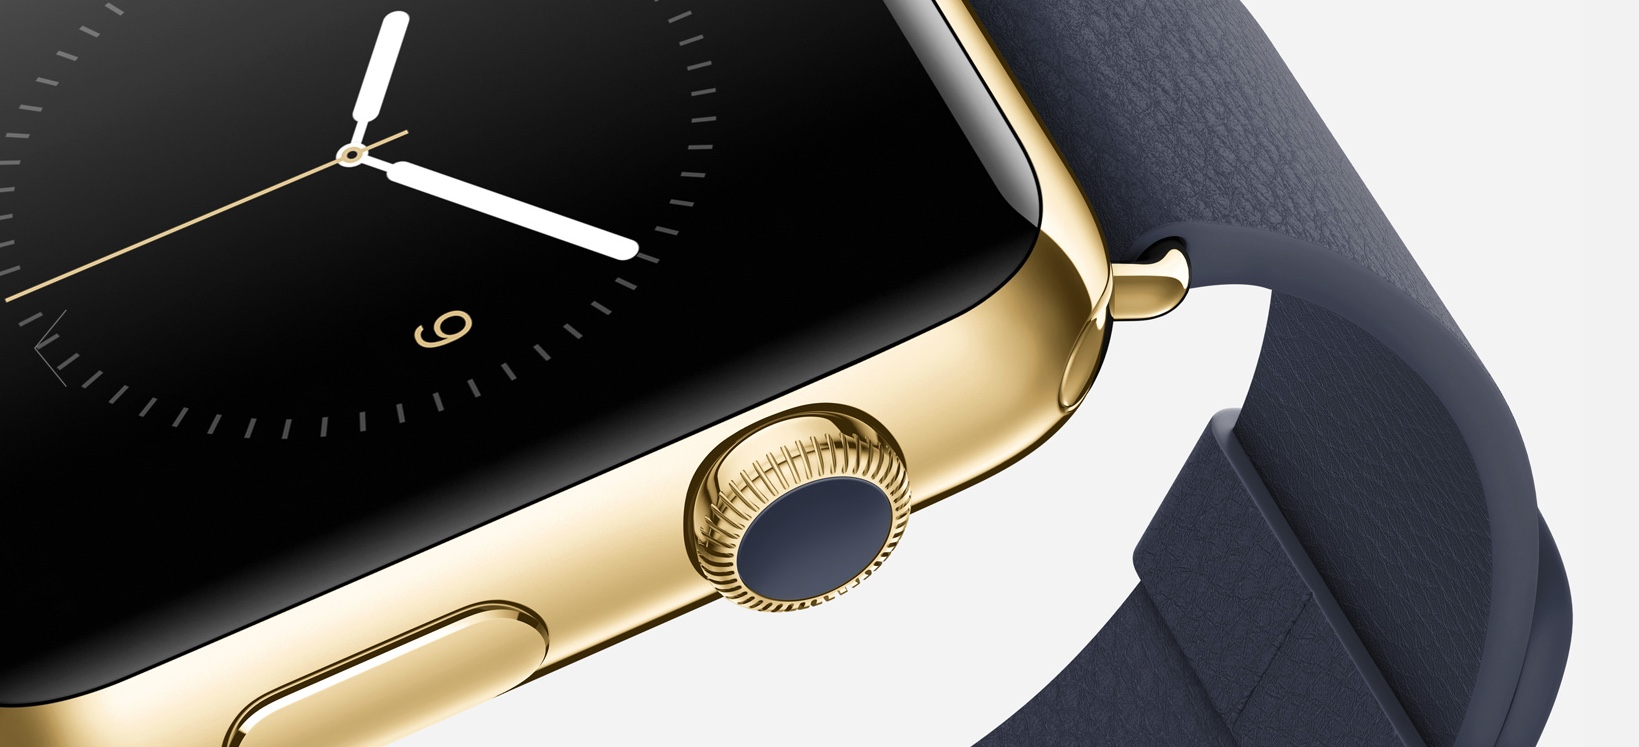 Gold Apple Watch to Start at $4,000, Says Source